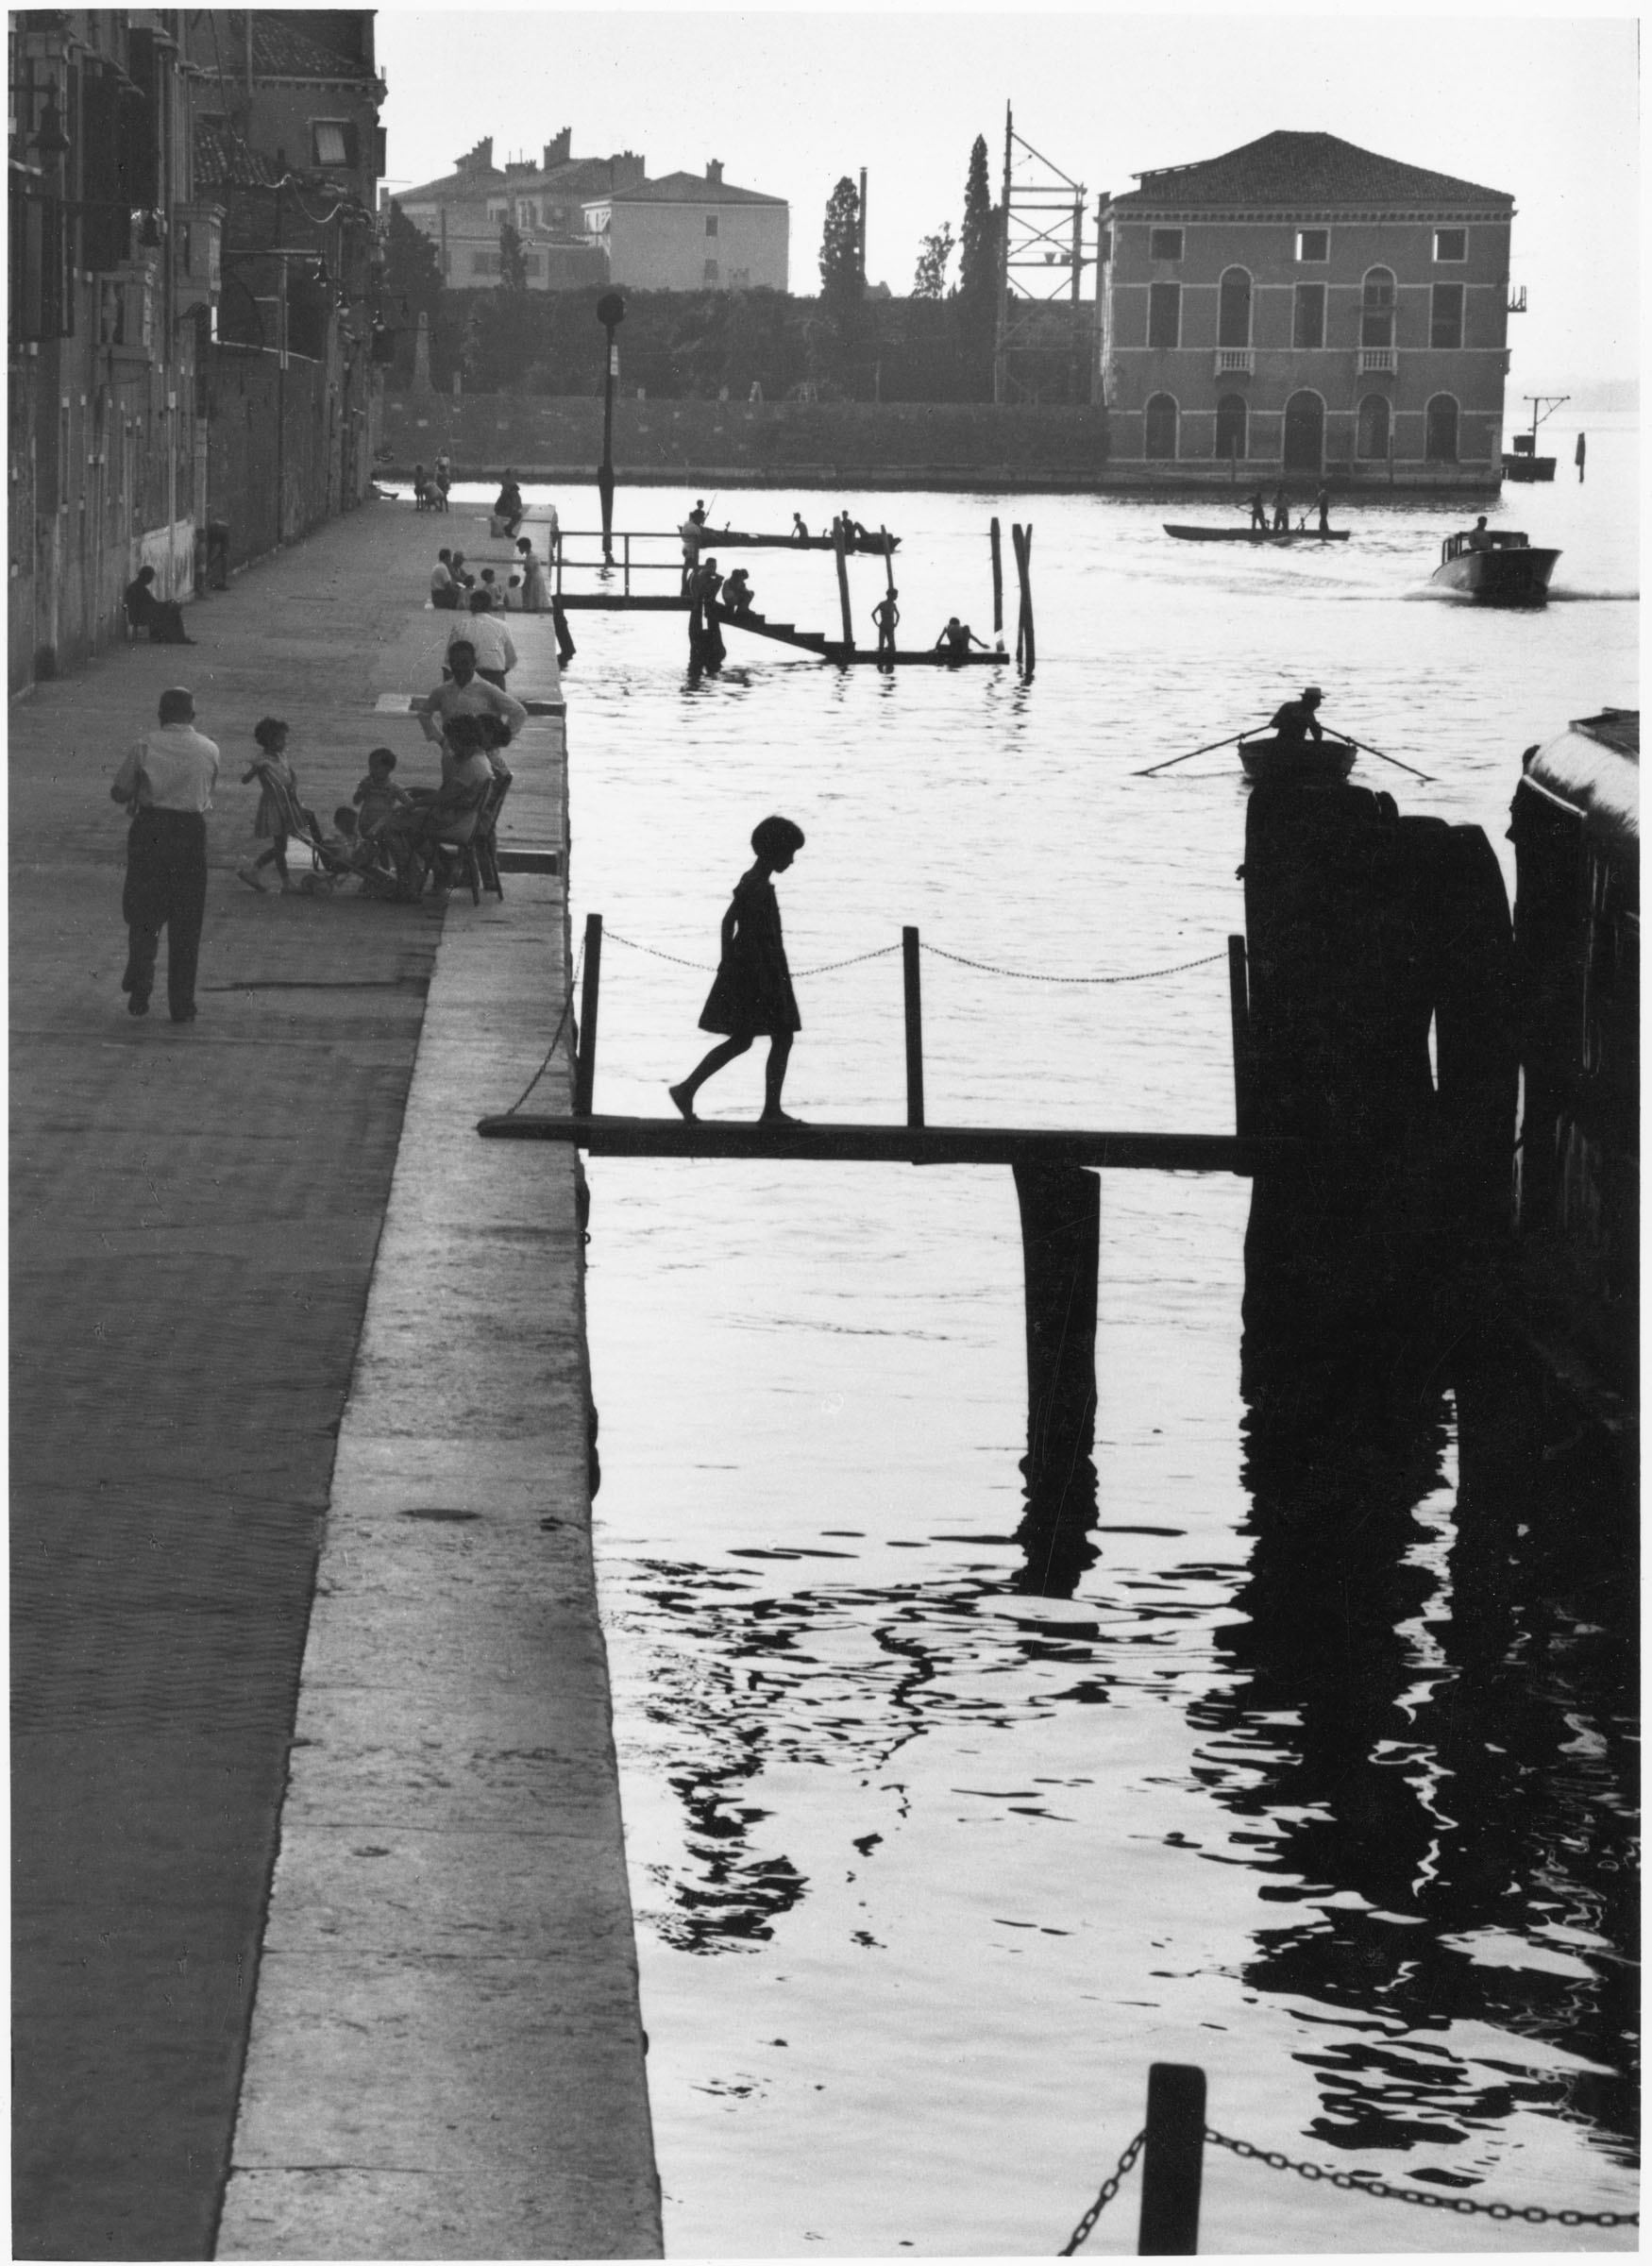 Willy Ronis in mostra a Tre Oci